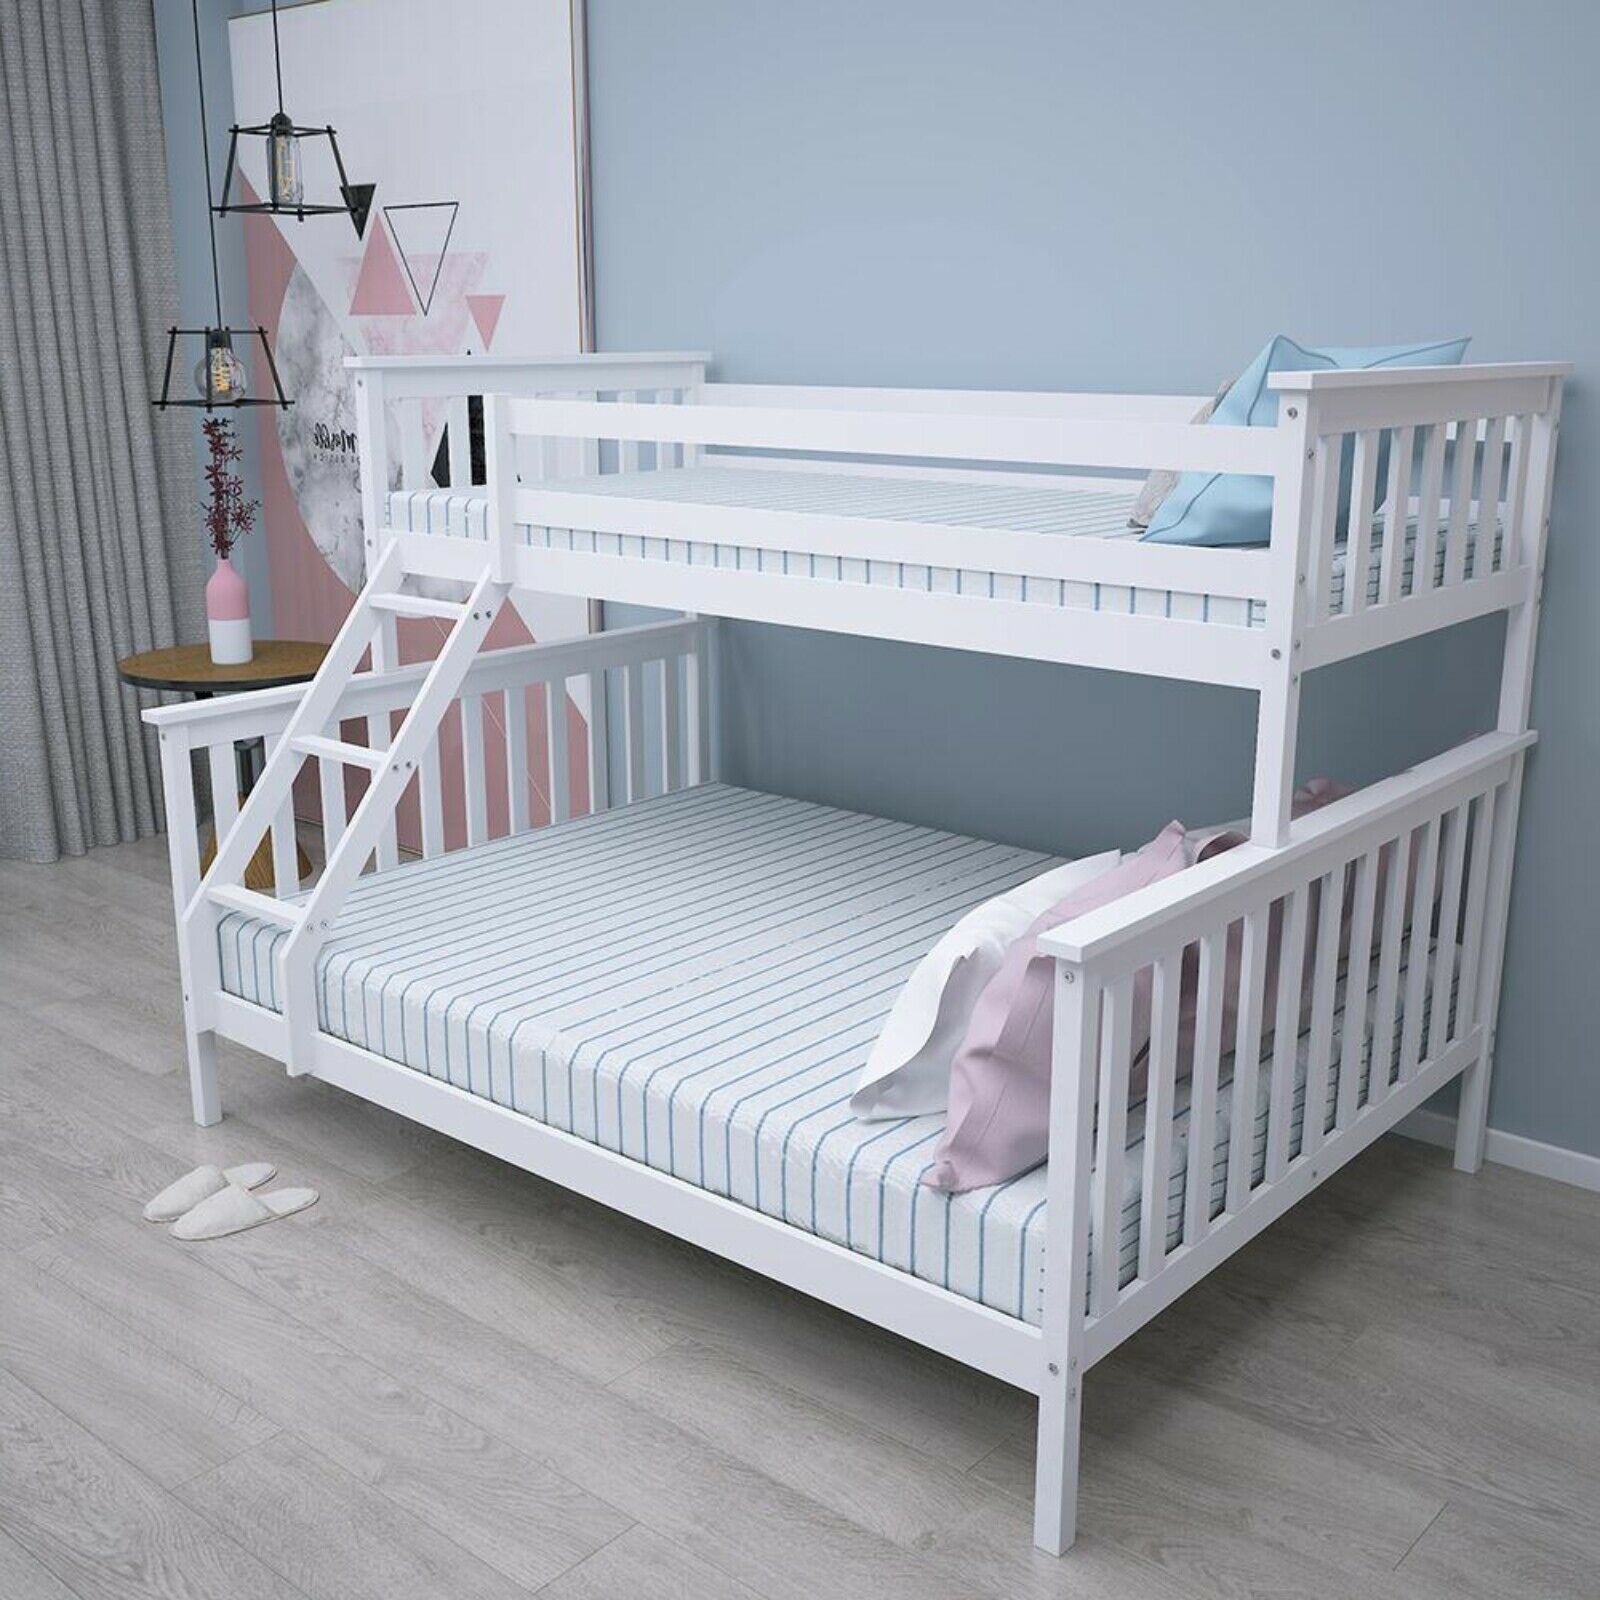 Double Bed Bunk Bed Triple 3 Pine Wood Kids White Children Bed Frame With Stairs Buy Double Bed Wood Kids Cheap Bunk Bed Frames Product On Alibaba Com